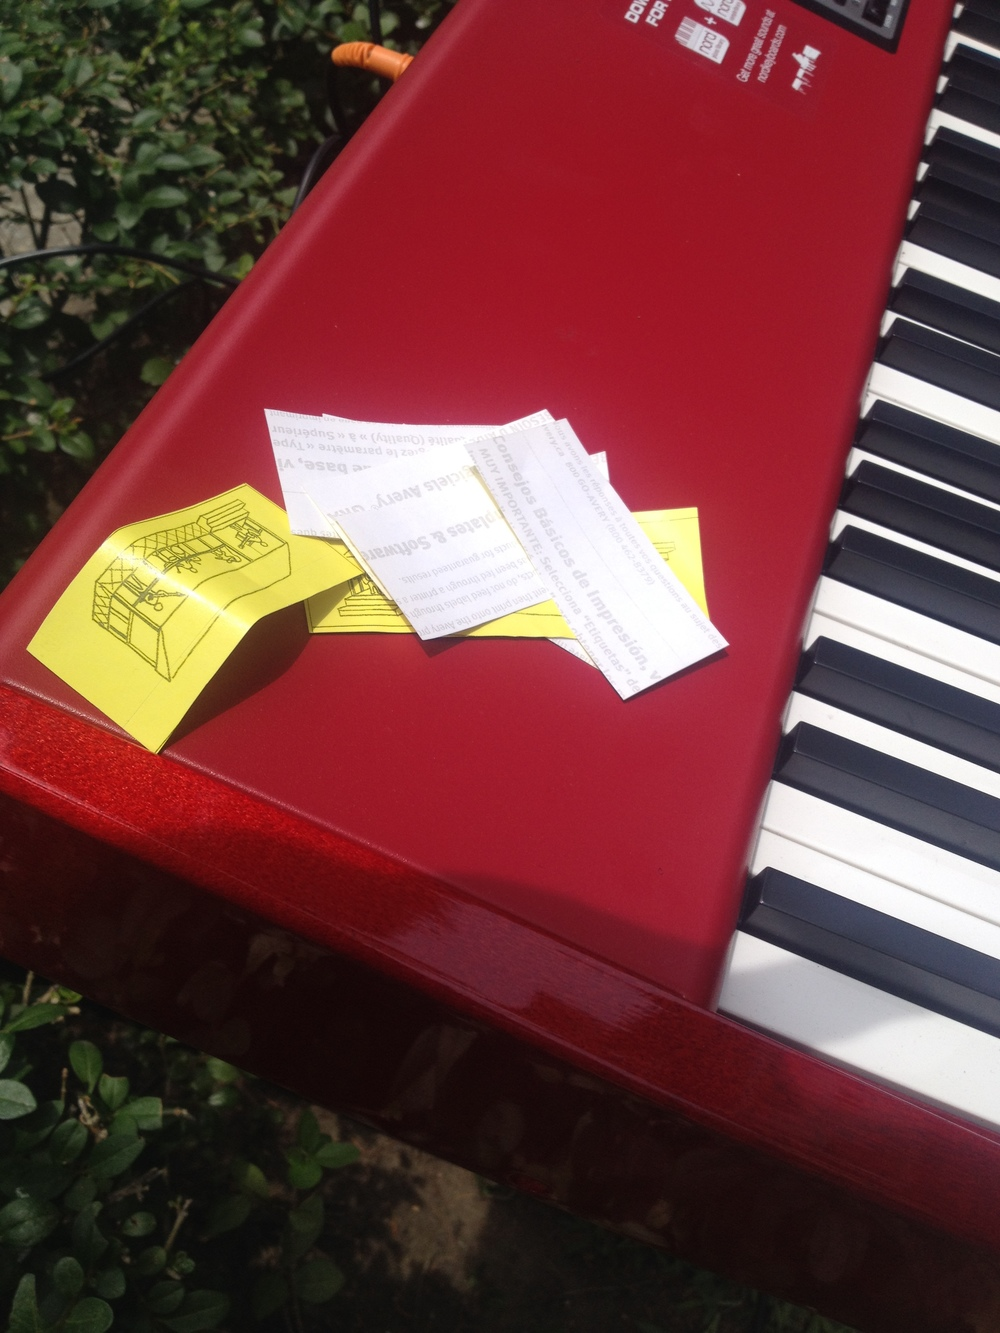 stickers on piano.jpg